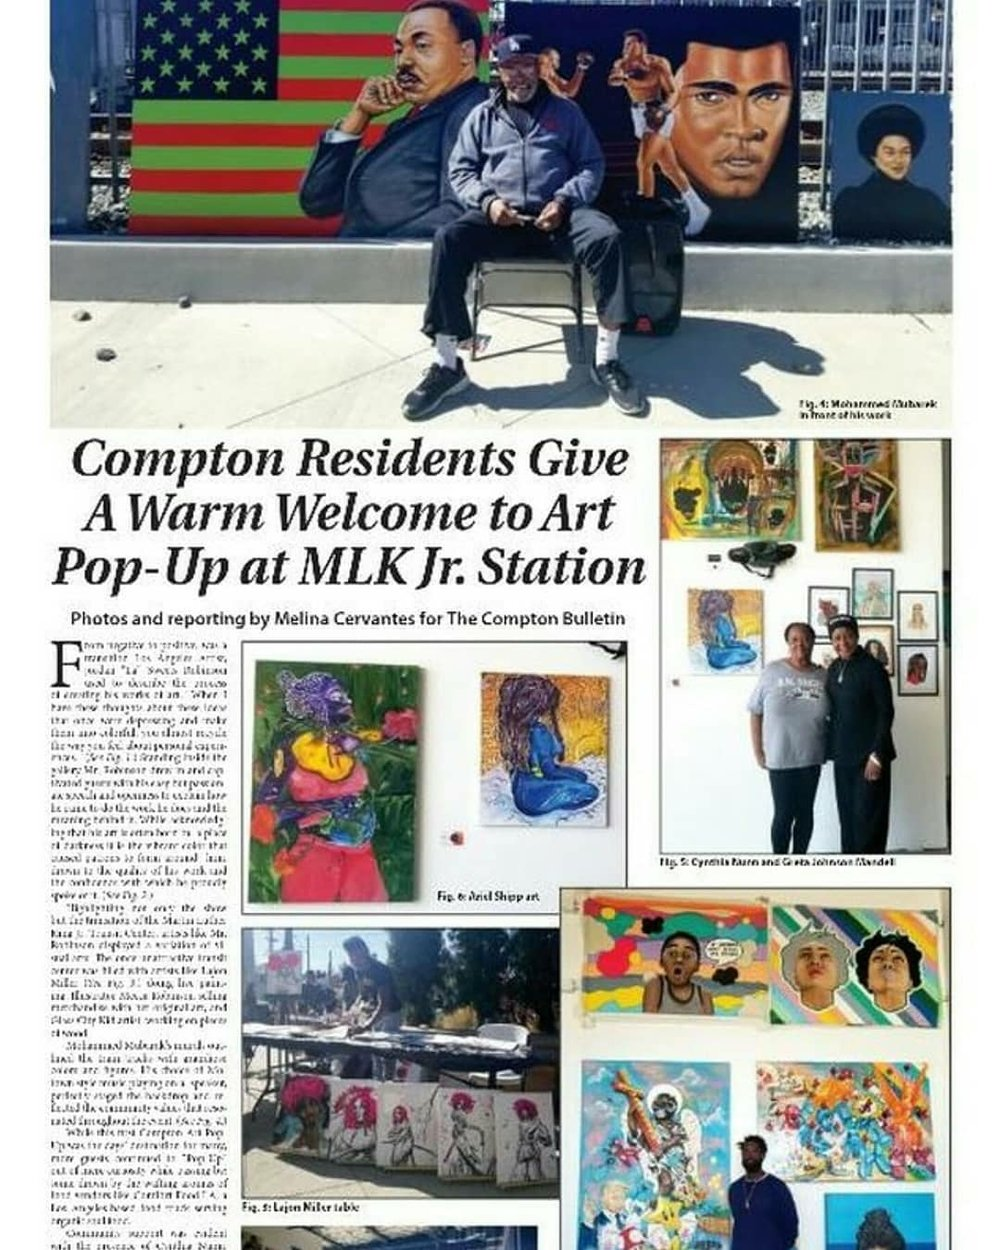 Article from The Compton BULLETIN from the Art pop up at MLK jr. station compton ca.